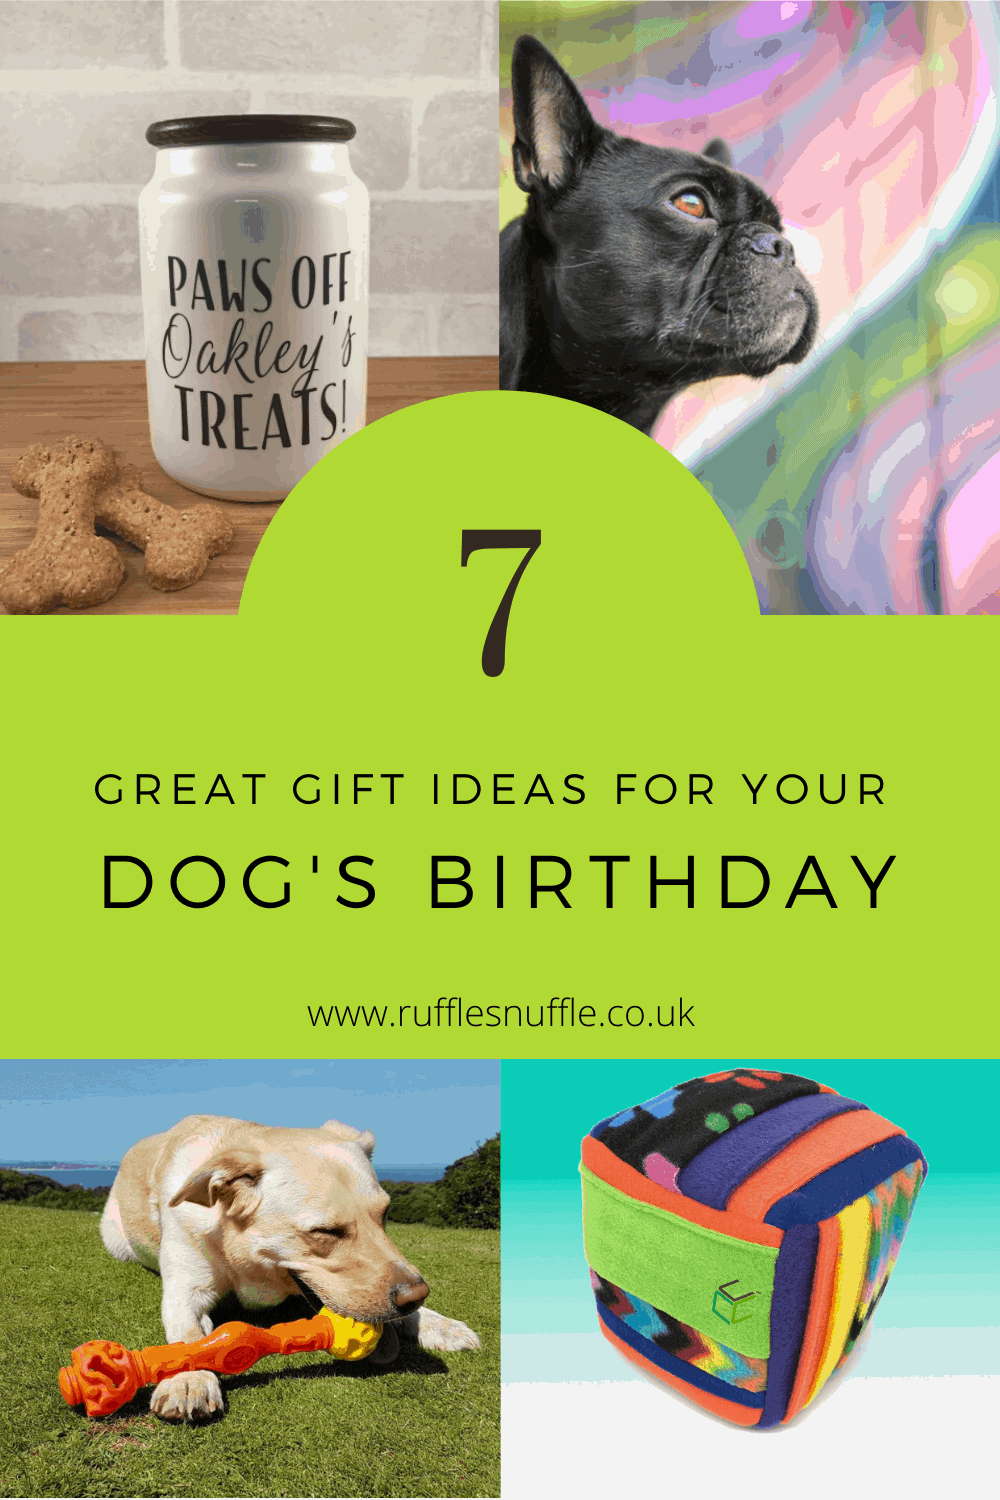 7 great gift ideas for your dog's birthday